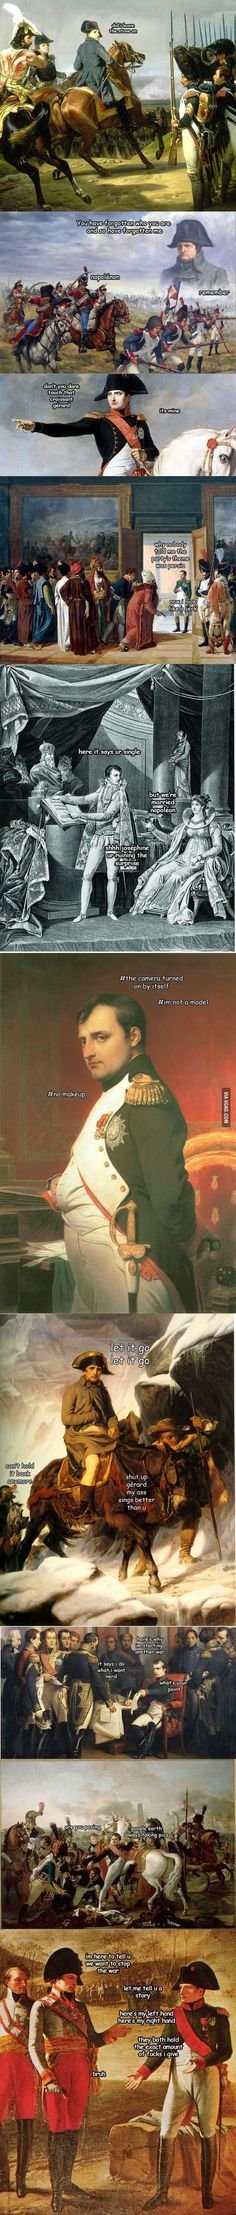 The Adventures of Napoléon Bonaparte: